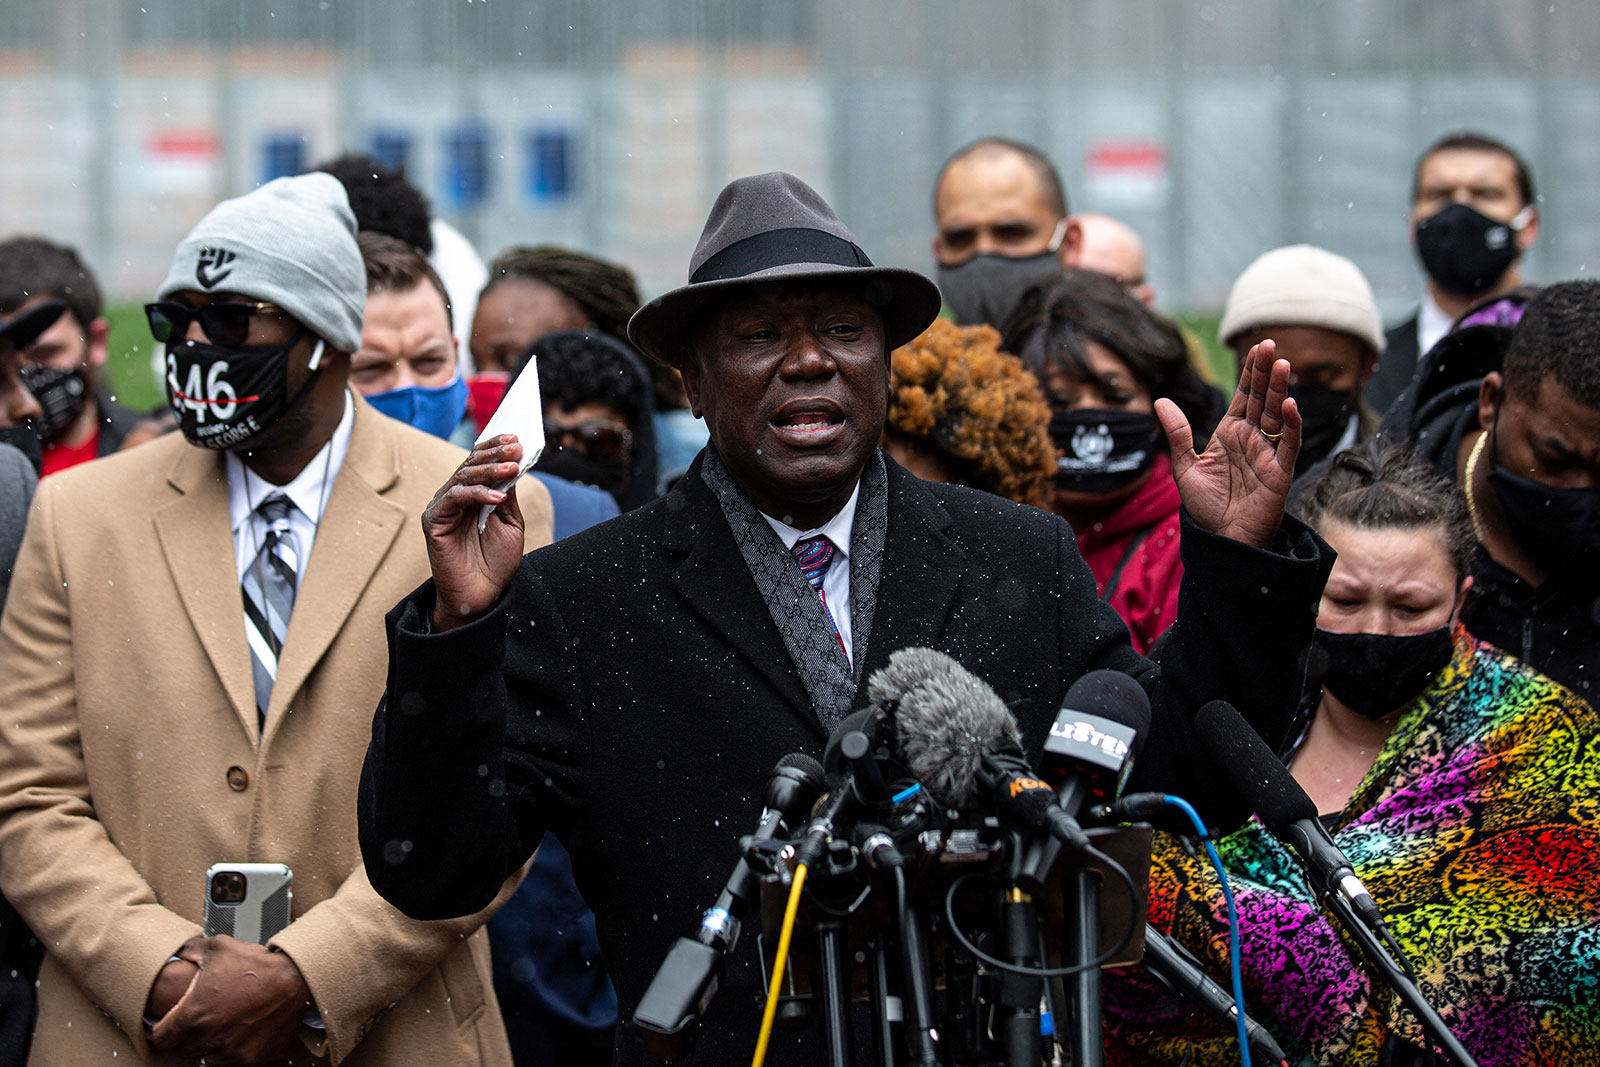 Attorney Ben Crump, center, speaks during a press conference with the families of Daunte Wright and George Floyd outside the Hennepin County Government Center in Minneapolis, Minnesota, on April 13.